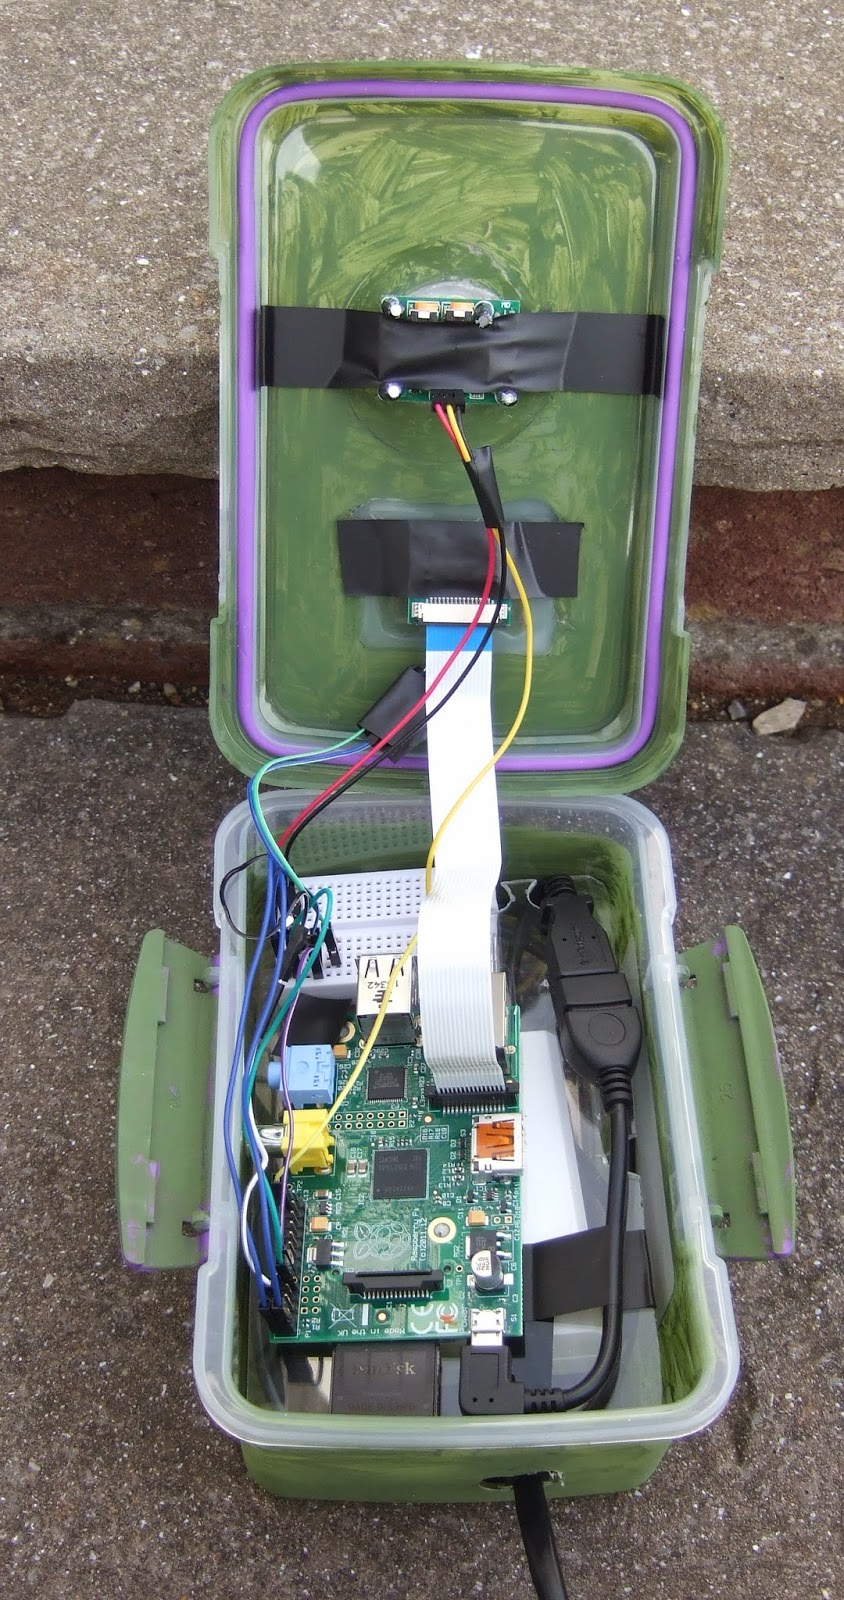 Part I Ve Got The Power Over Ethernet Ive Powerover Pathsolutions Nestboxtech 2 How To Omega Without Ether